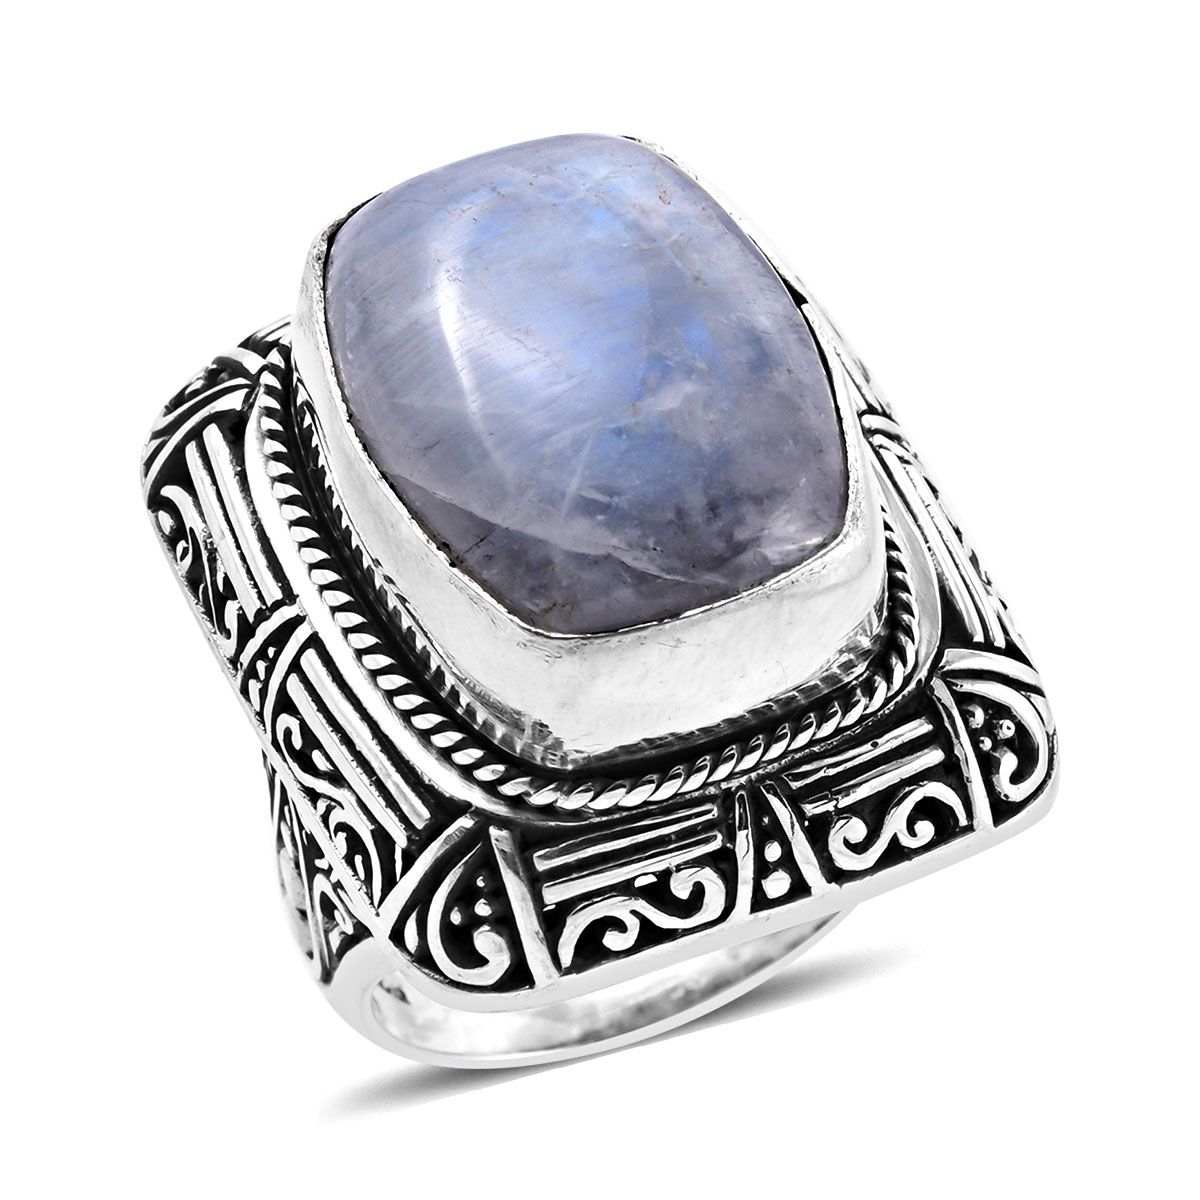 Great Jewelry Greatest Item Gift for Friend Real Gemstones Round Faceted Rainbow Moonstone Ring 925 Sterling Silver White Rainbow Moonstone Real Gemstones Ring